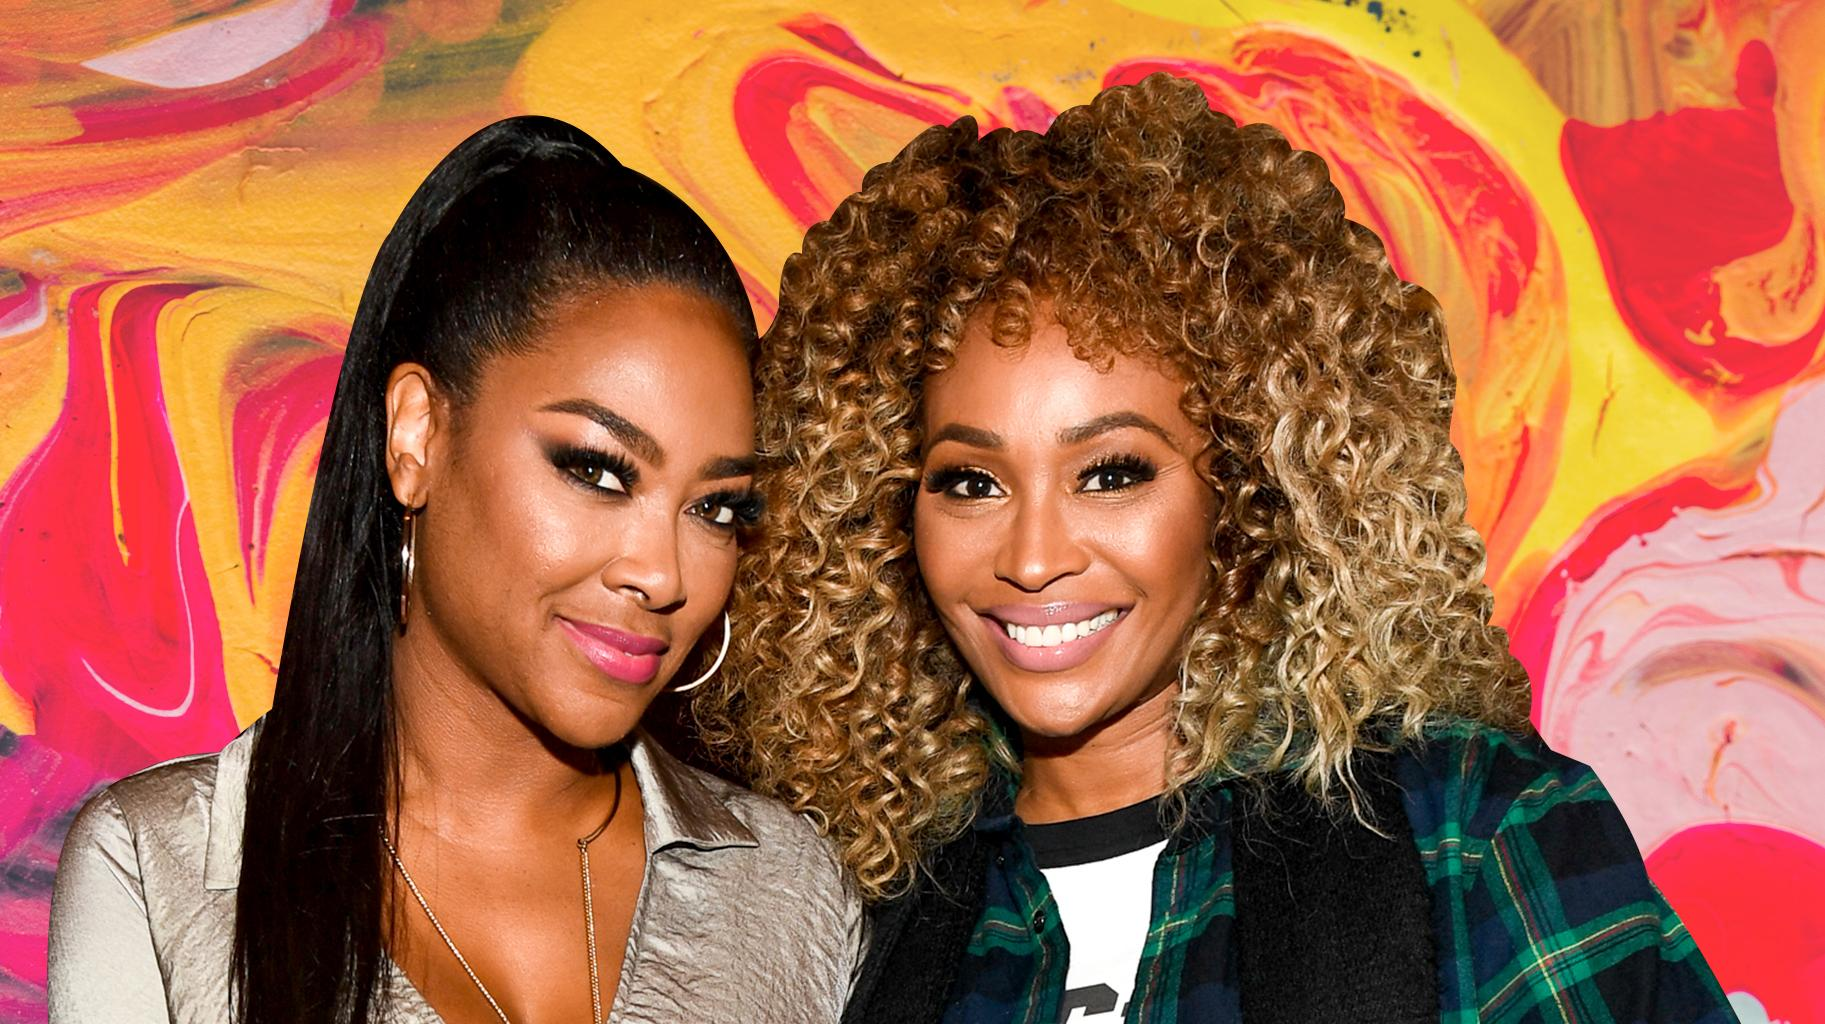 Kenya Moore Congratulates Cynthia Bailey For Her Engagement - Here's Her Message